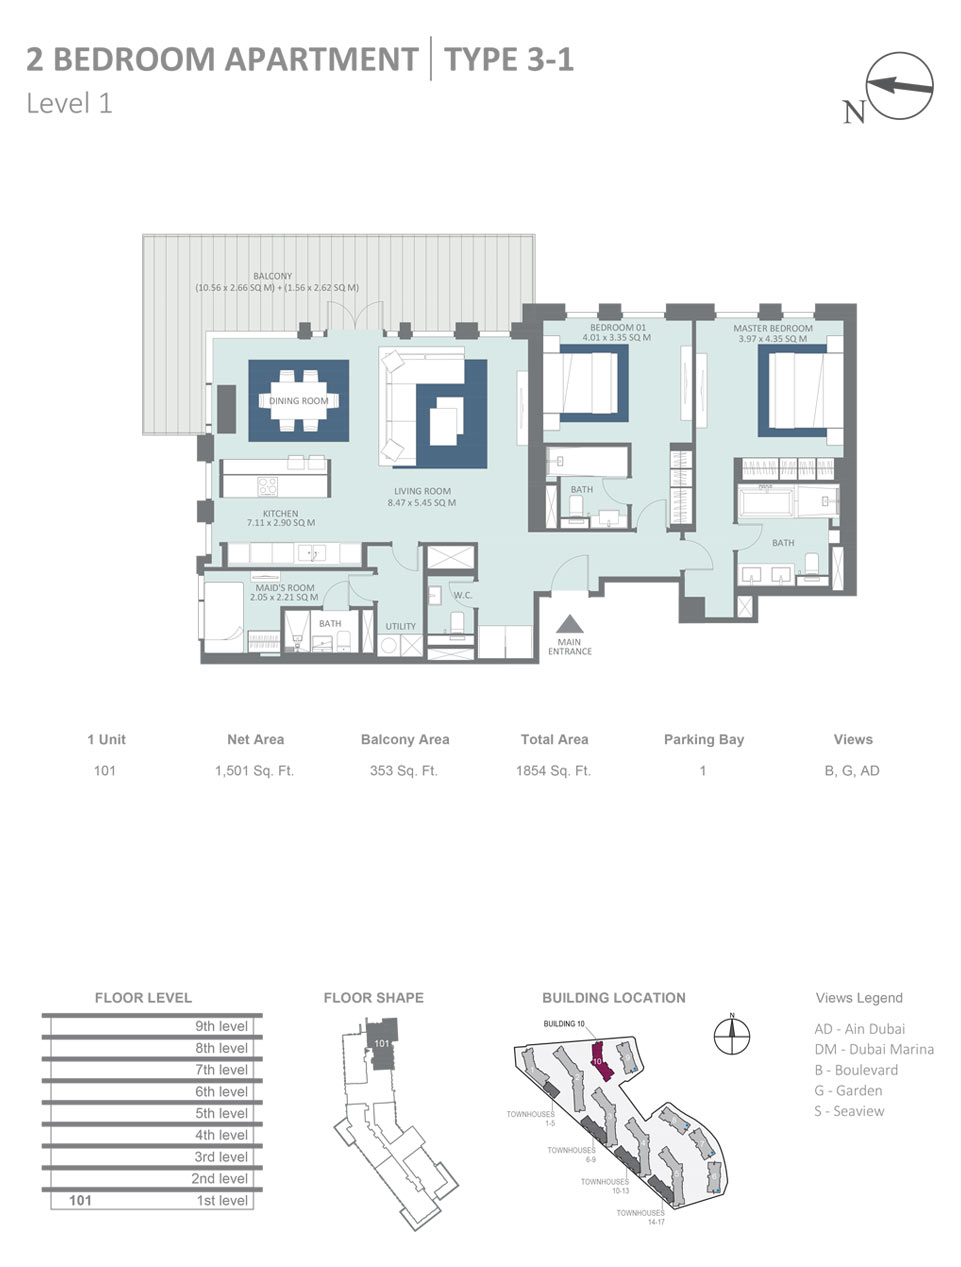 Building 10 - 2 Bedroom Apartment Type 3, 1, Level 1, Size 1854  sq. ft.